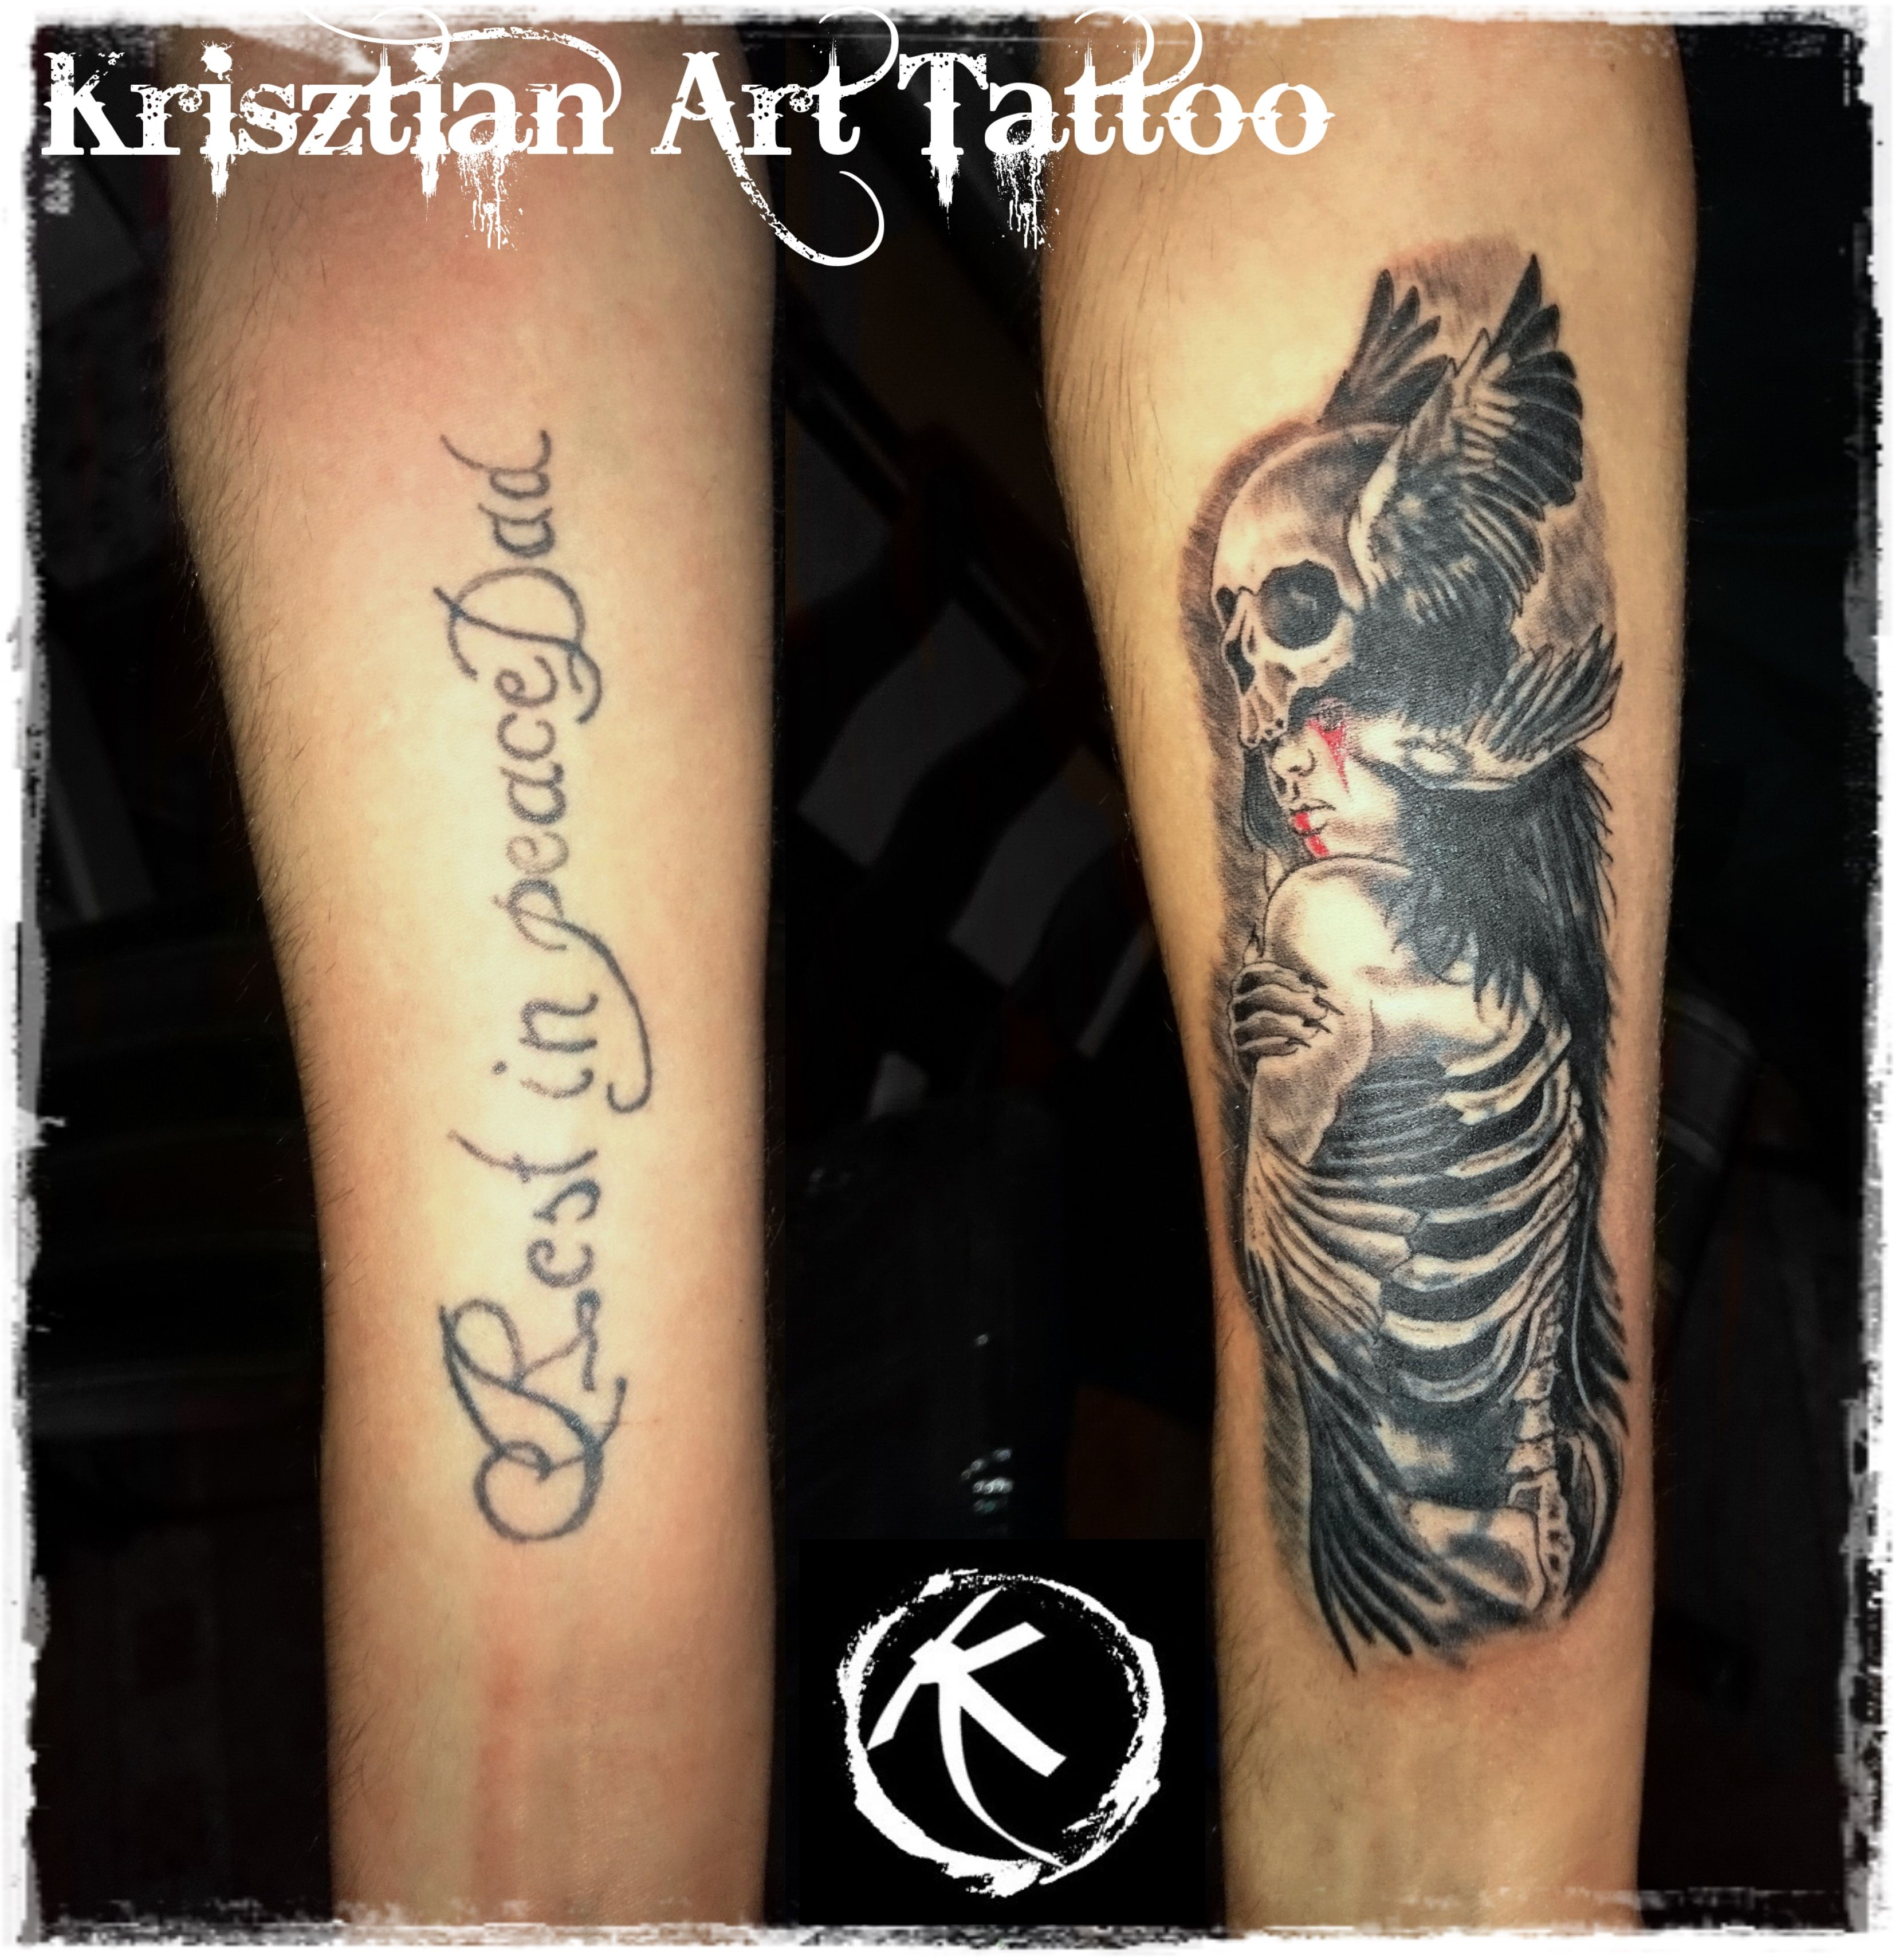 Krisztian Art Tattoo Cover Up Tattoo Forearm Skull And Girl